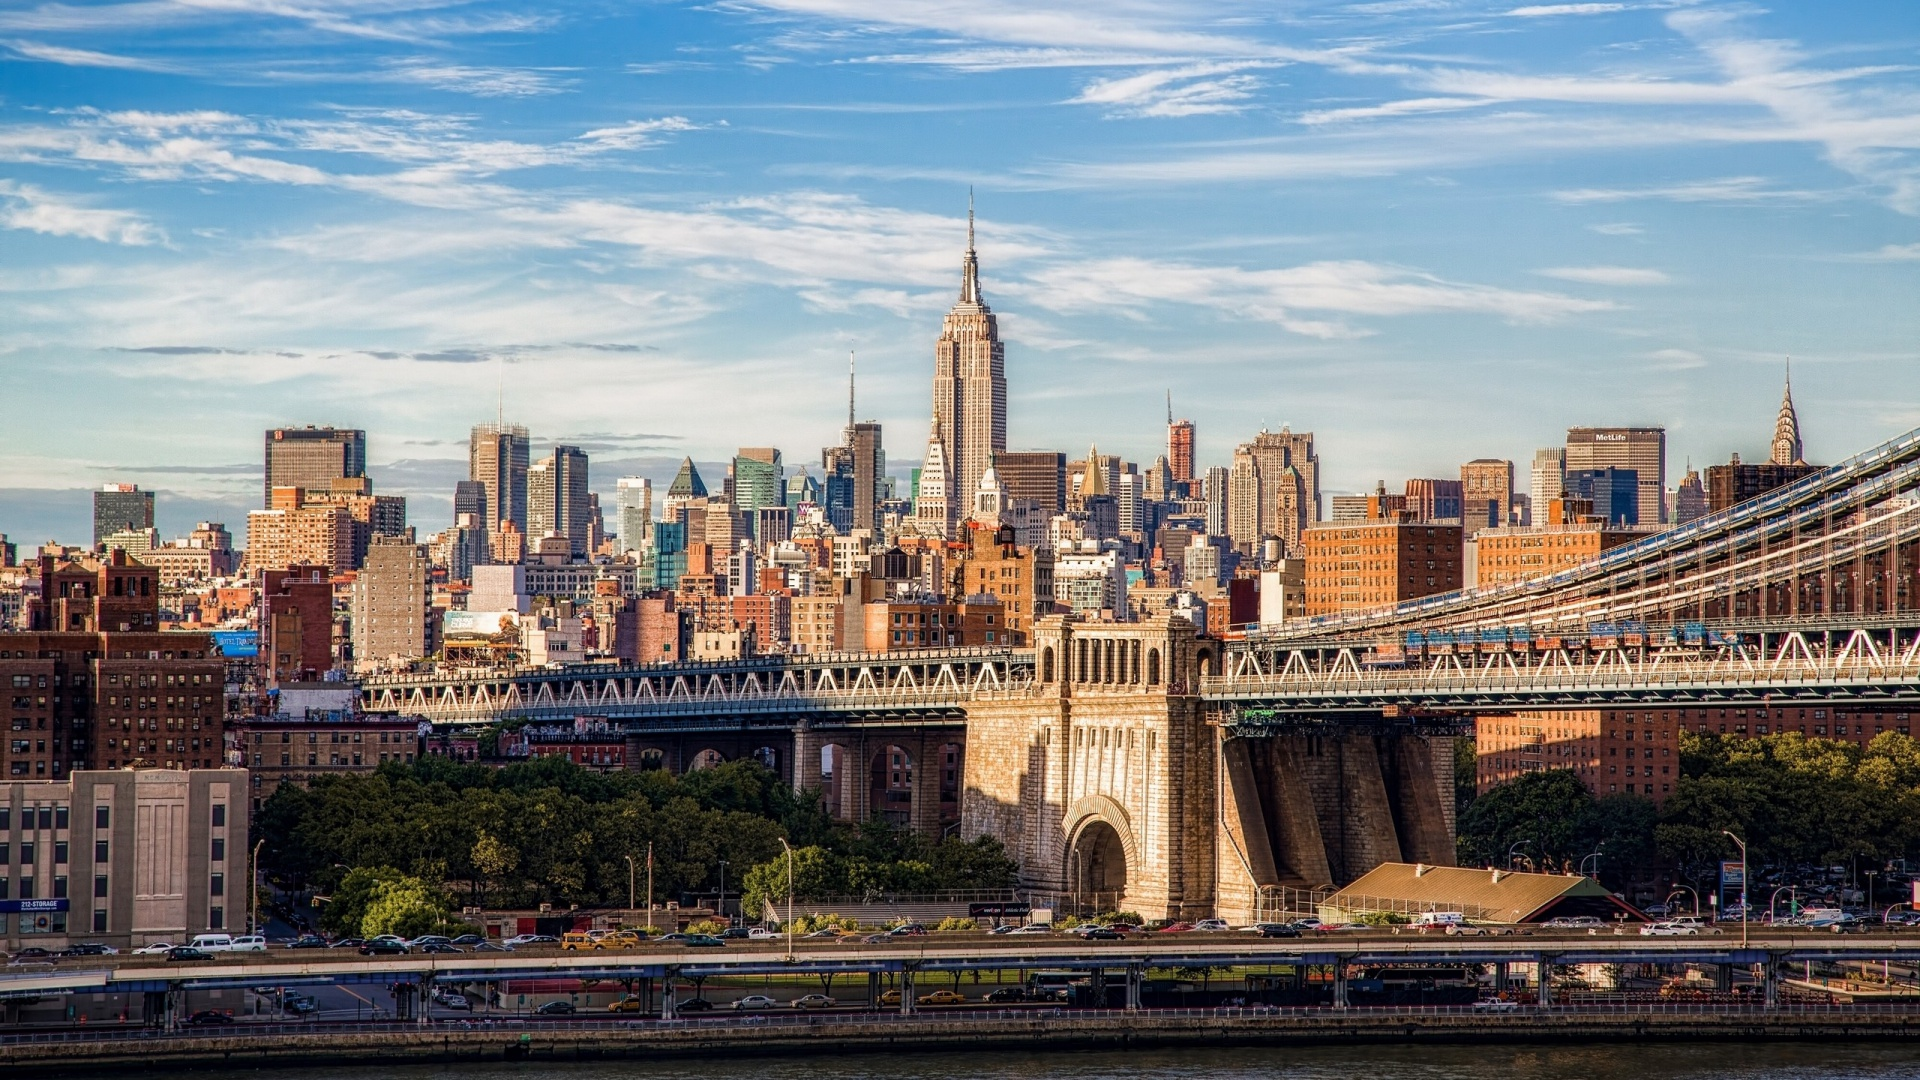 1920x1080 Brooklyn Bridge Manhattan Desktop PC And Mac Wallpaper